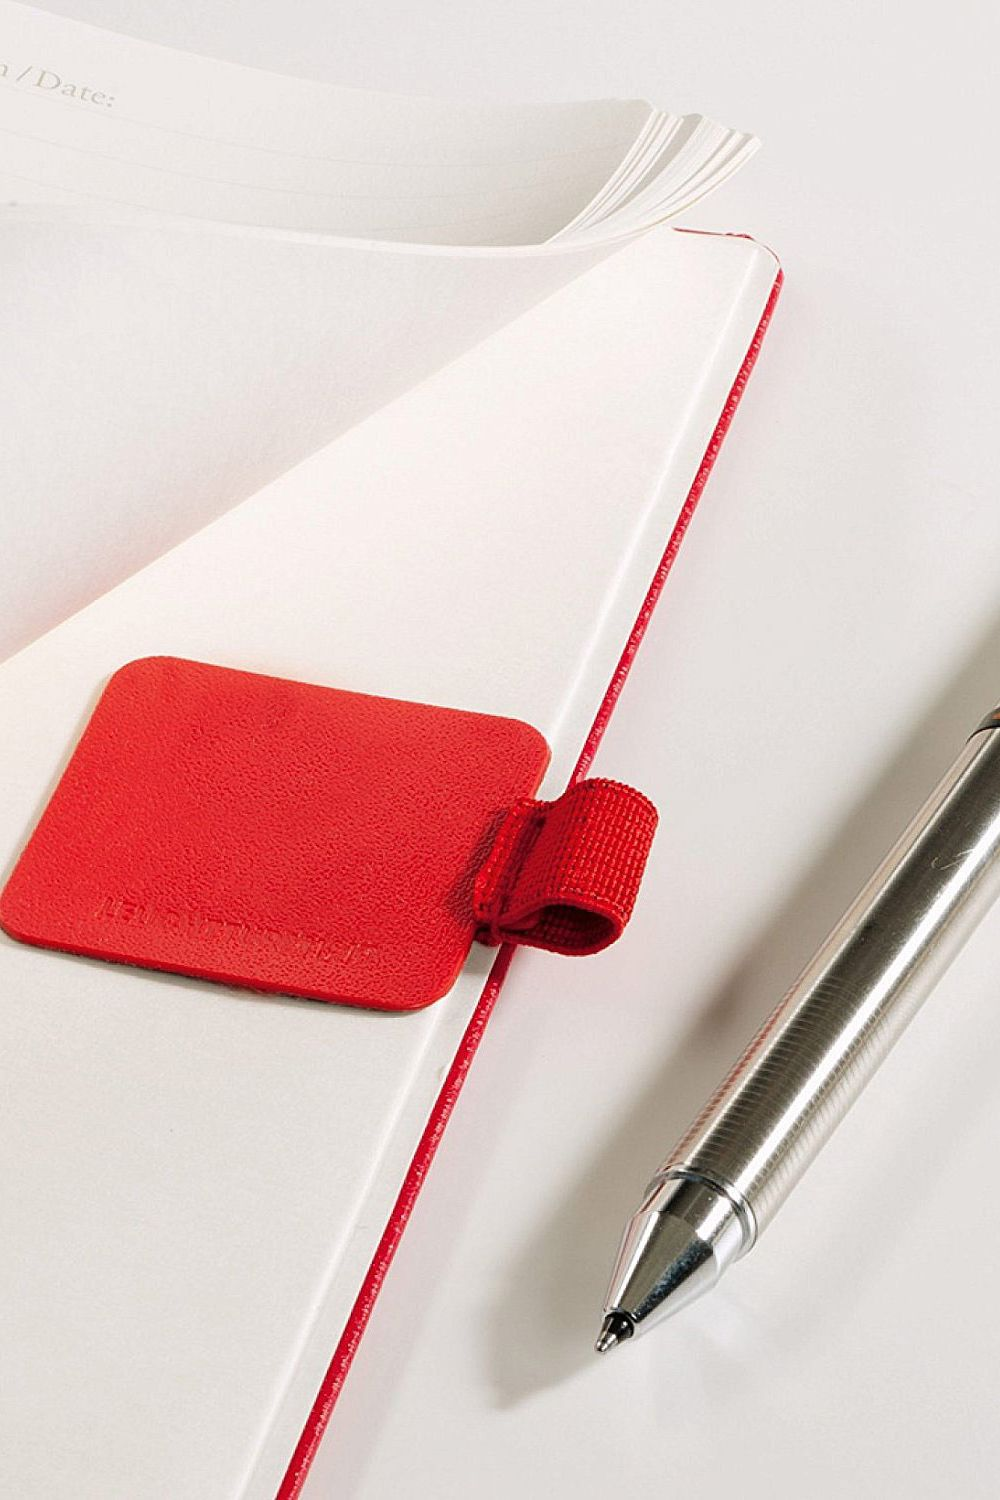 Leuchtturm1917 Self Adhesive Pen Loop Elastic Pen Holder